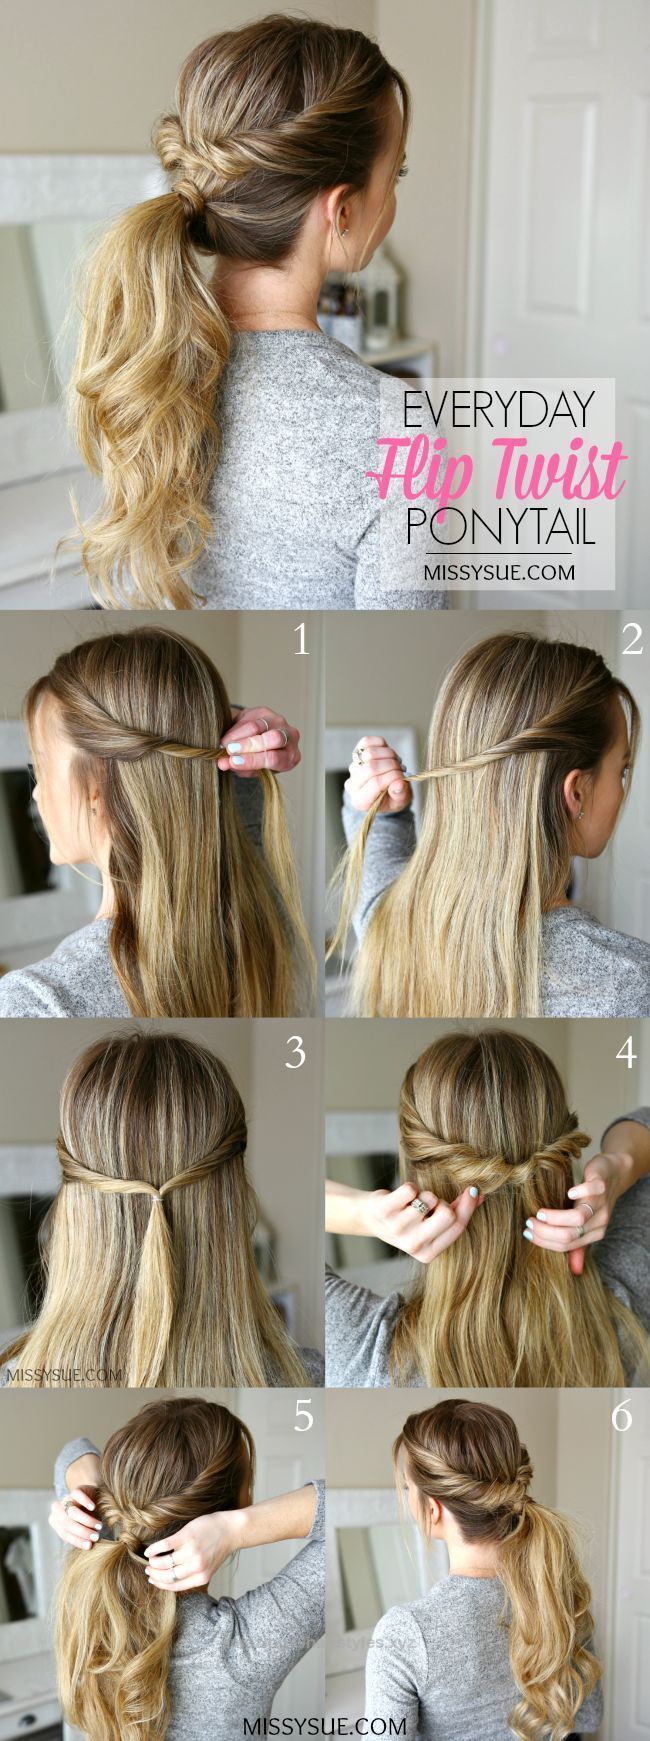 Awesome Ponytails are such a great go-to hairstyle. They're quick, easy, and get all of your hair up and out of the way. I really, really love them. In fact, I find myself wearing them way more  ..